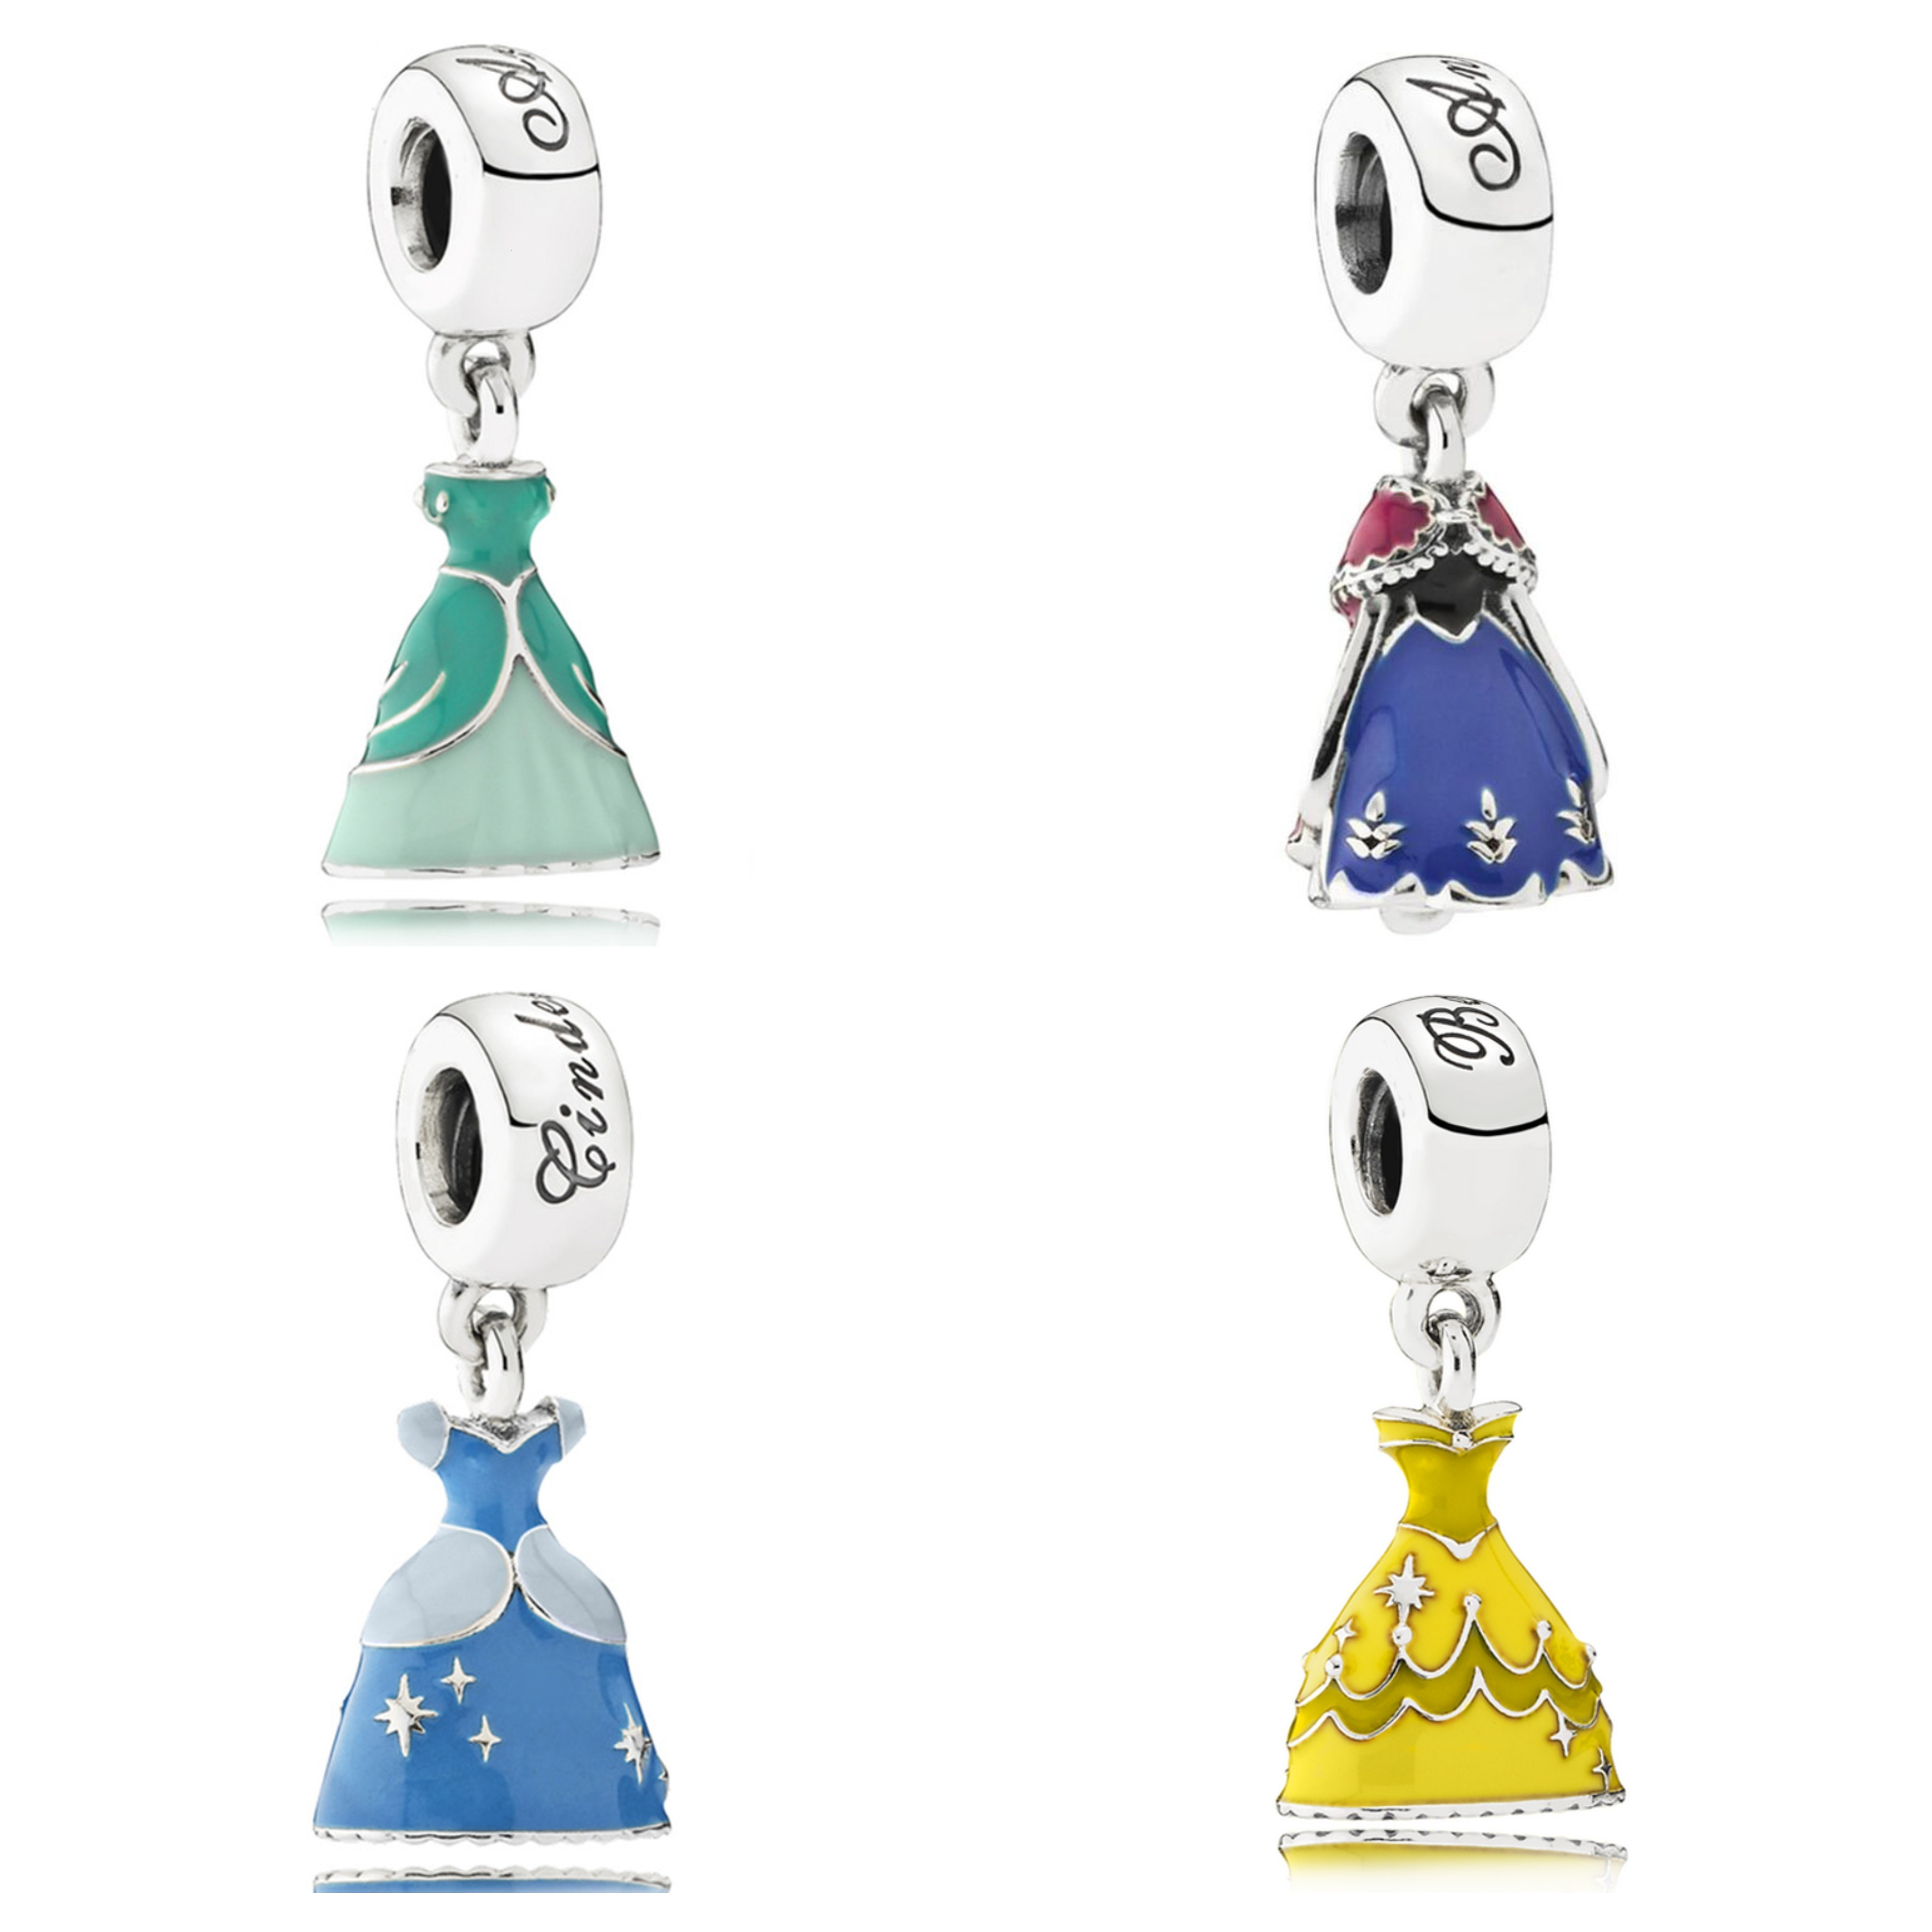 Authentic 925 Sterling Silver Snow White Blue Green Dress Enamel Charm Dangle Bead fit Pandora Beads Charms Bracelets Jewelry